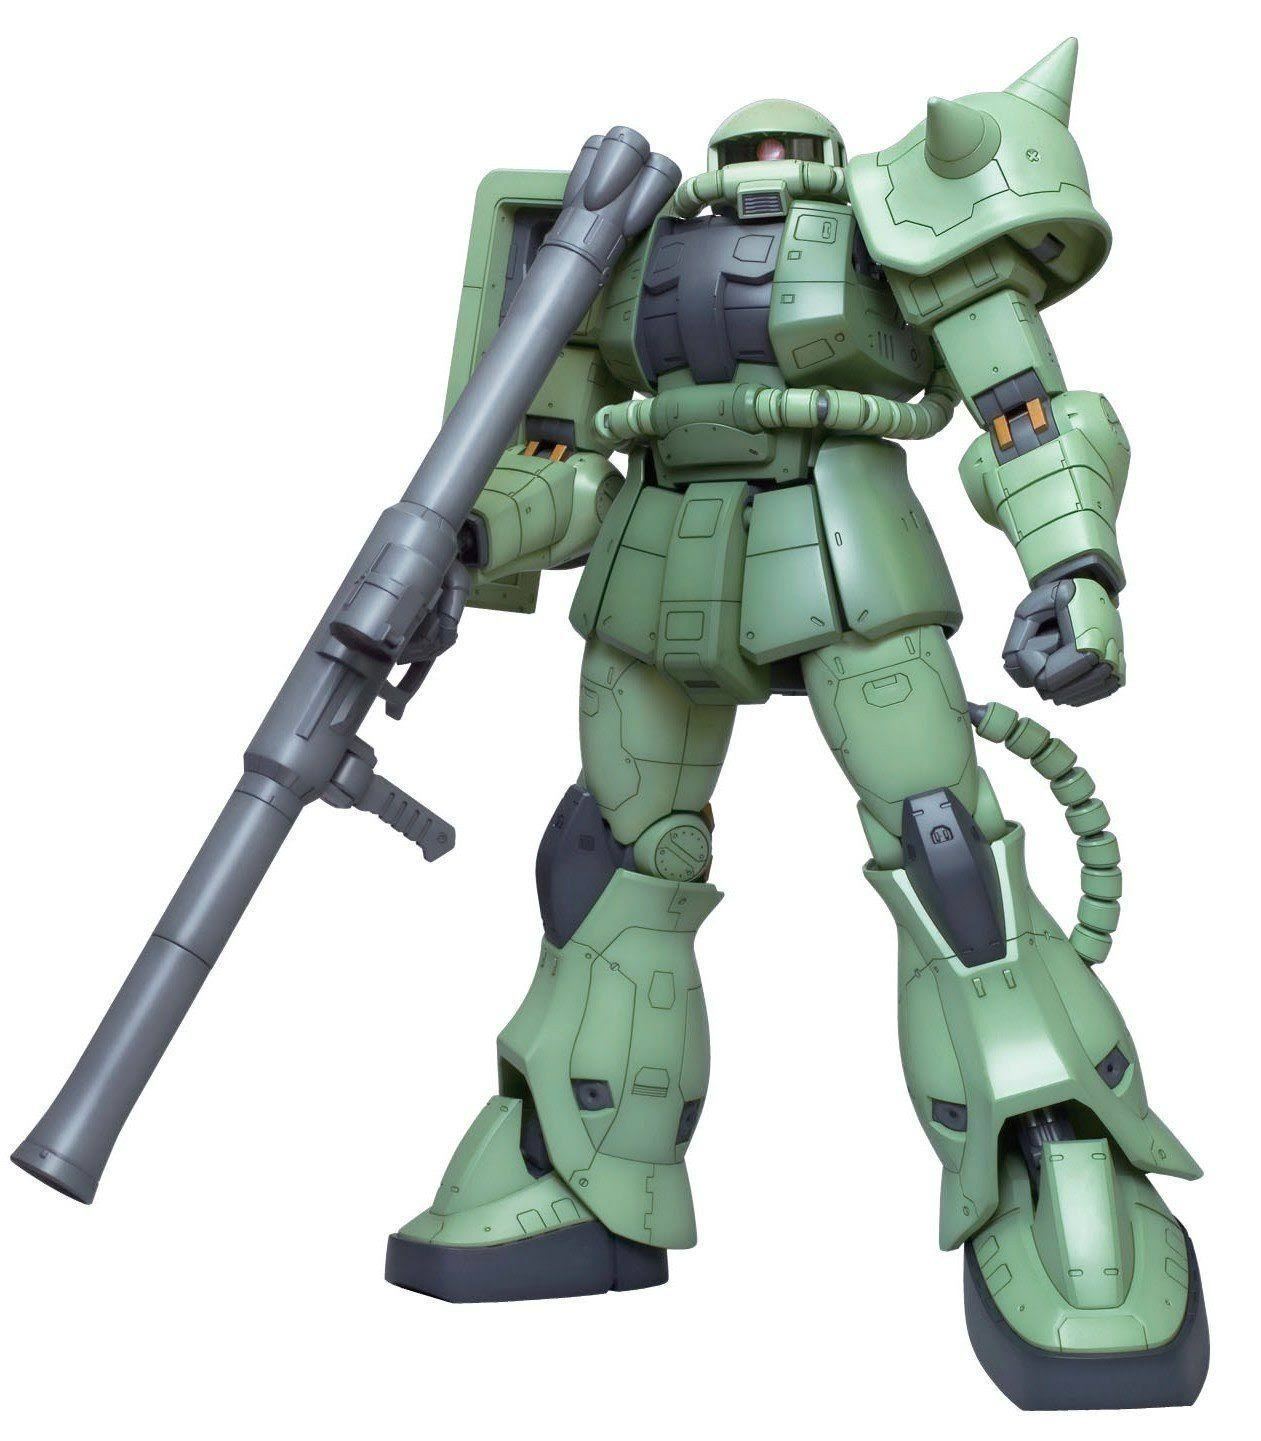 Bandai Gundam Mega Zaku II Model Kit - 1/48 Scale